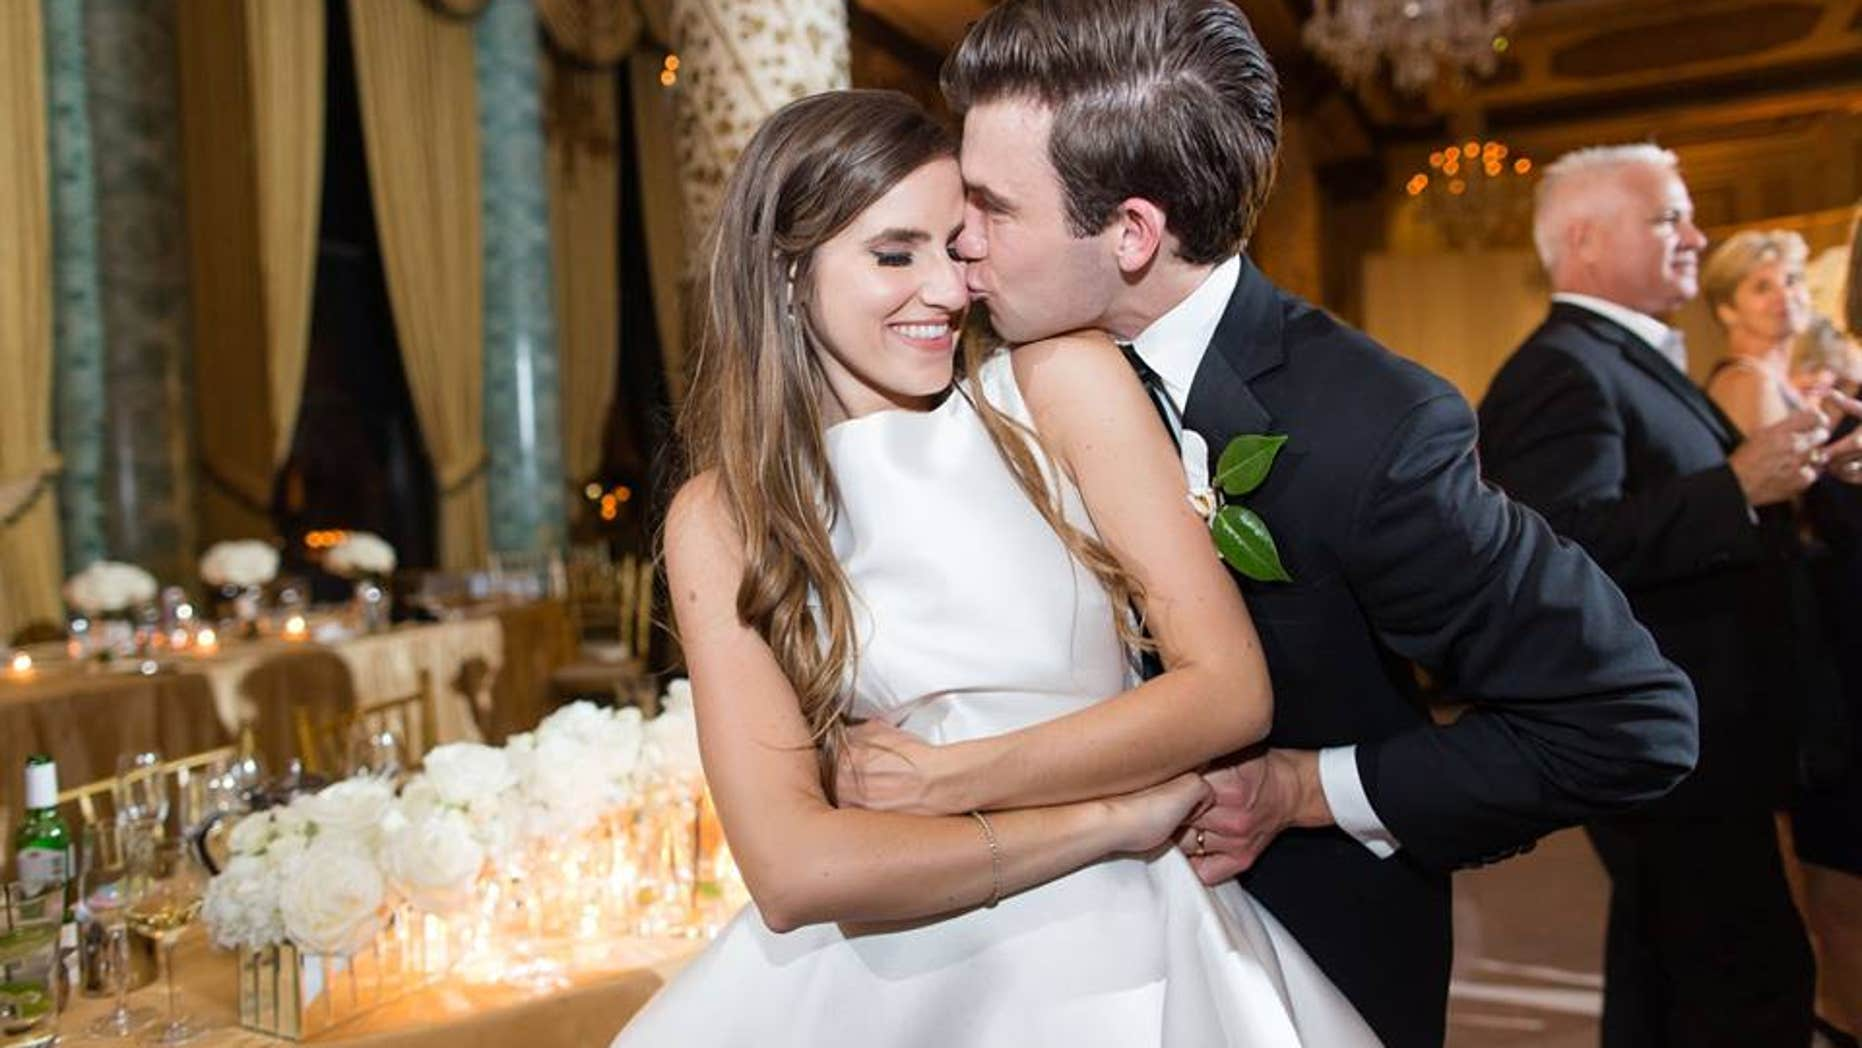 Christen with her husband, Sam, on their wedding day.